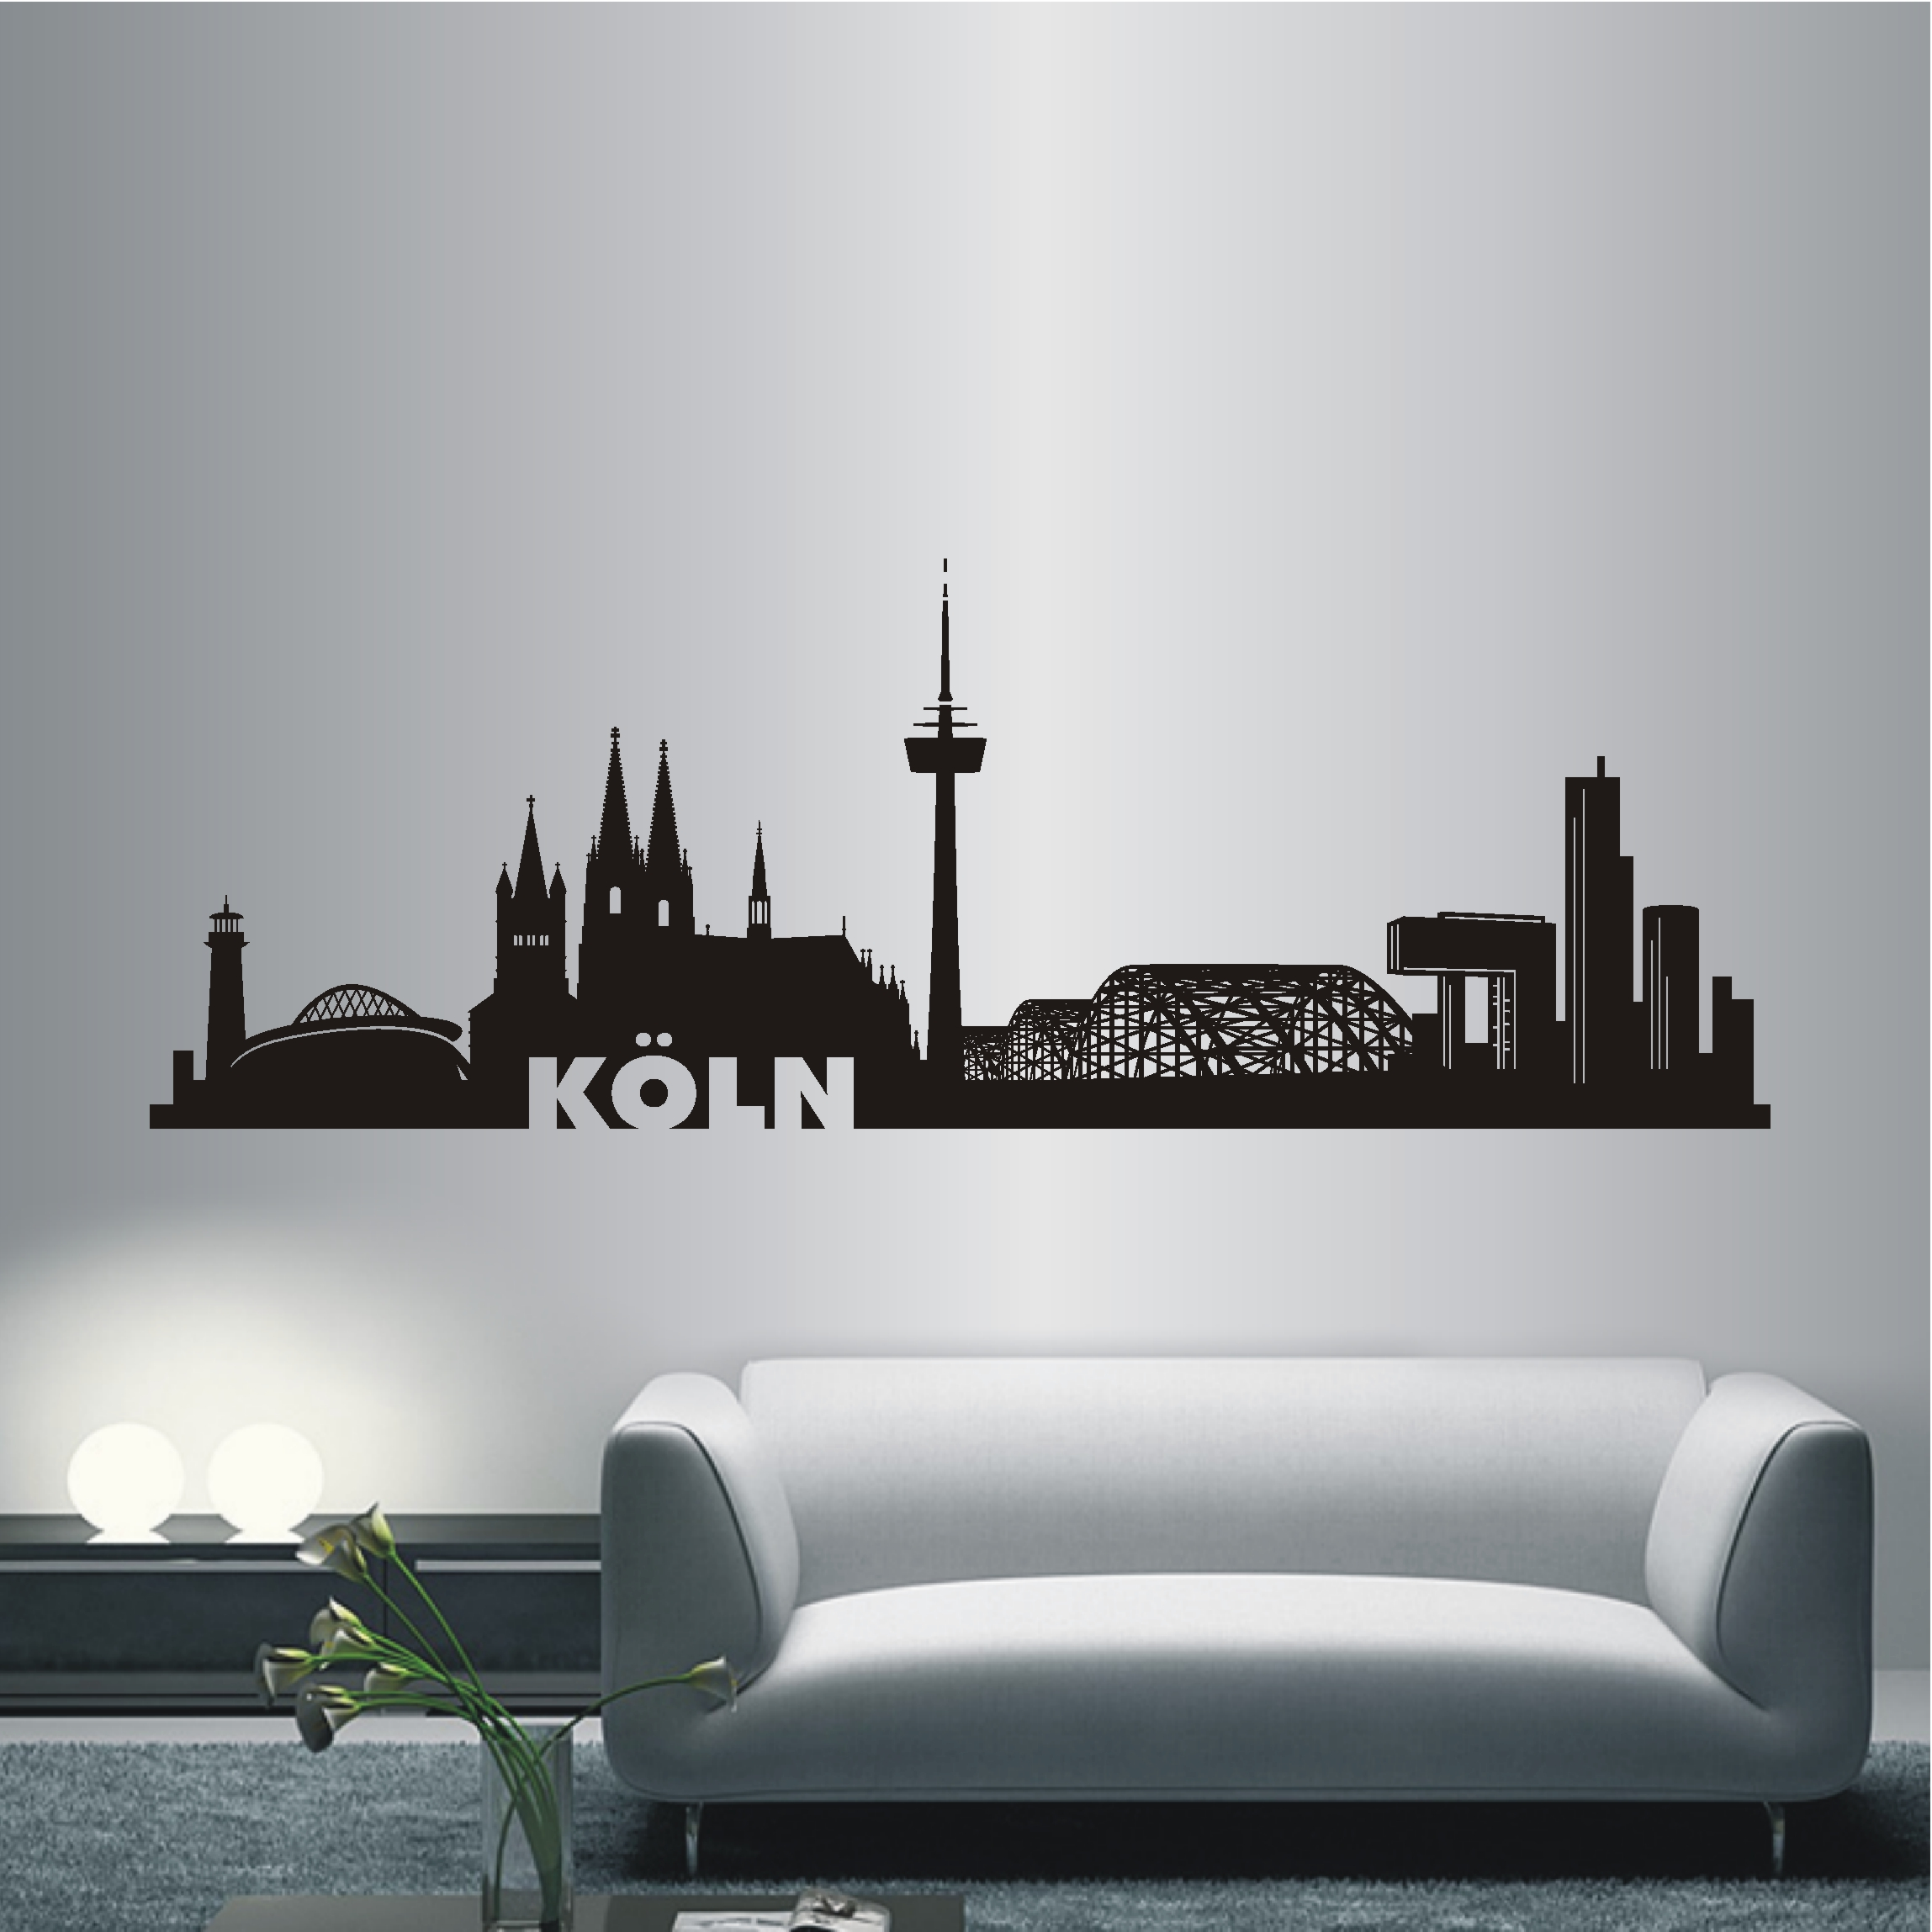 wandtattoo skyline k ln reuniecollegenoetsele. Black Bedroom Furniture Sets. Home Design Ideas